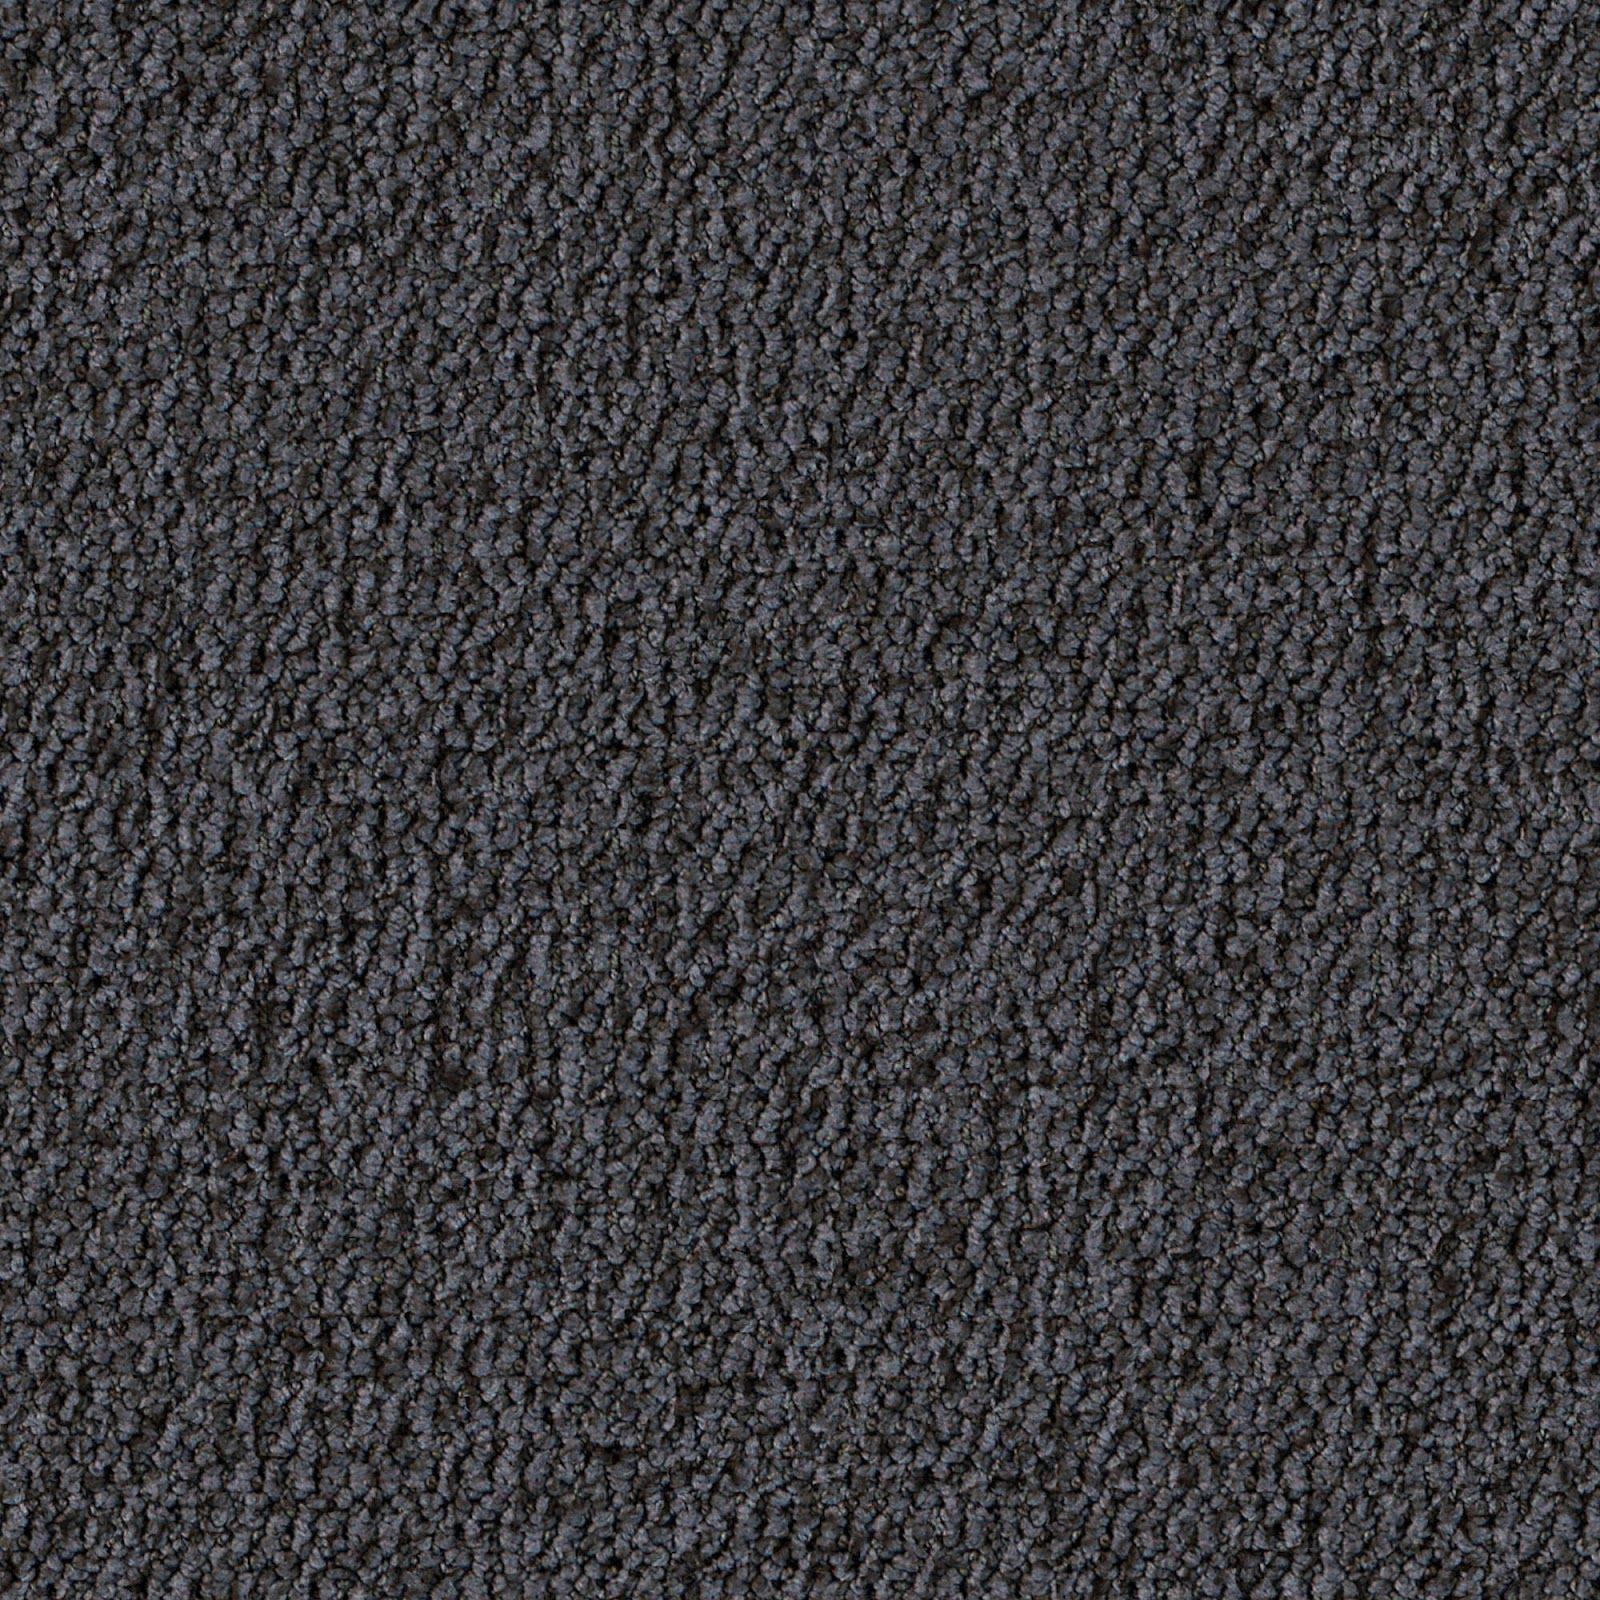 Pin By Will Reuther On Cmf In 2019 Textured Carpet Dark